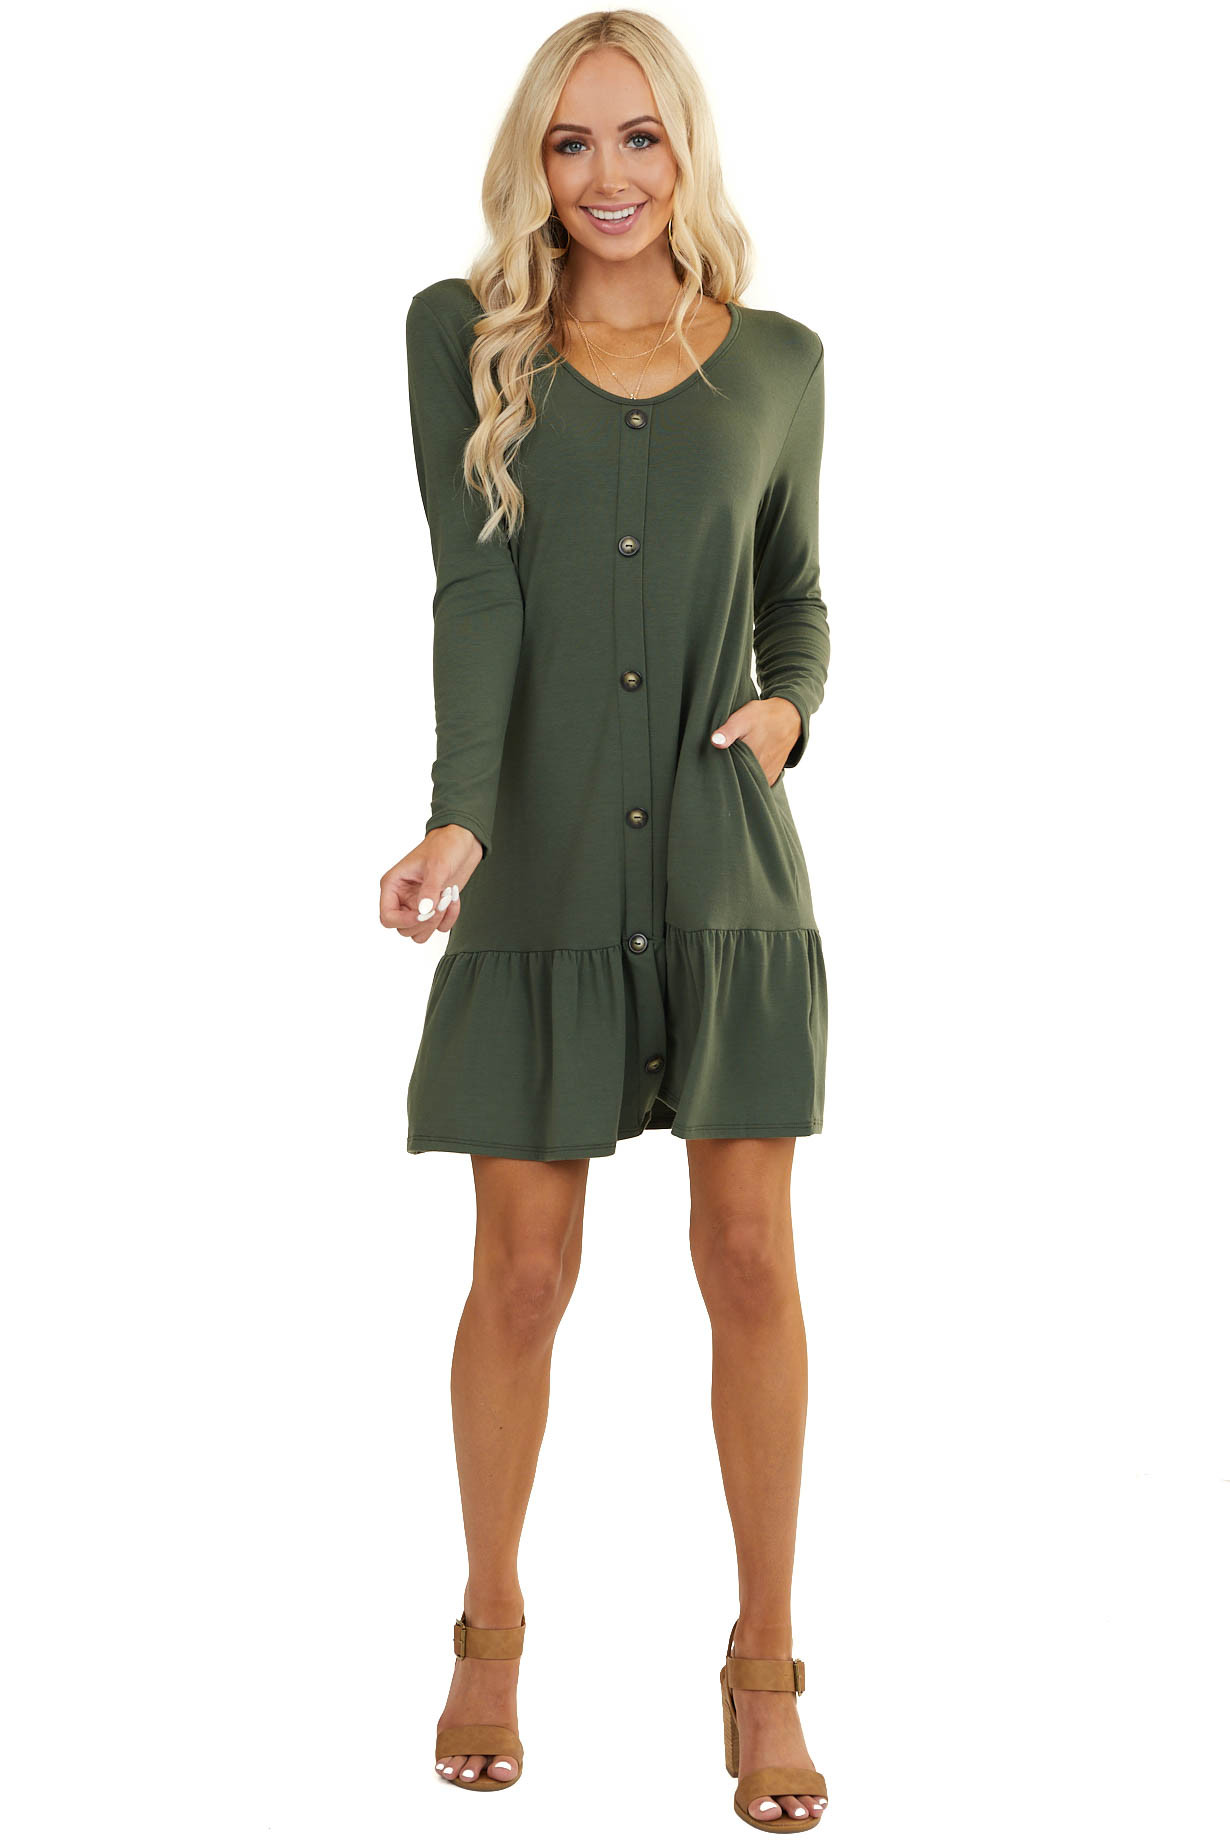 Forest Green Ruffle Hem Dress with Buttons and Pockets